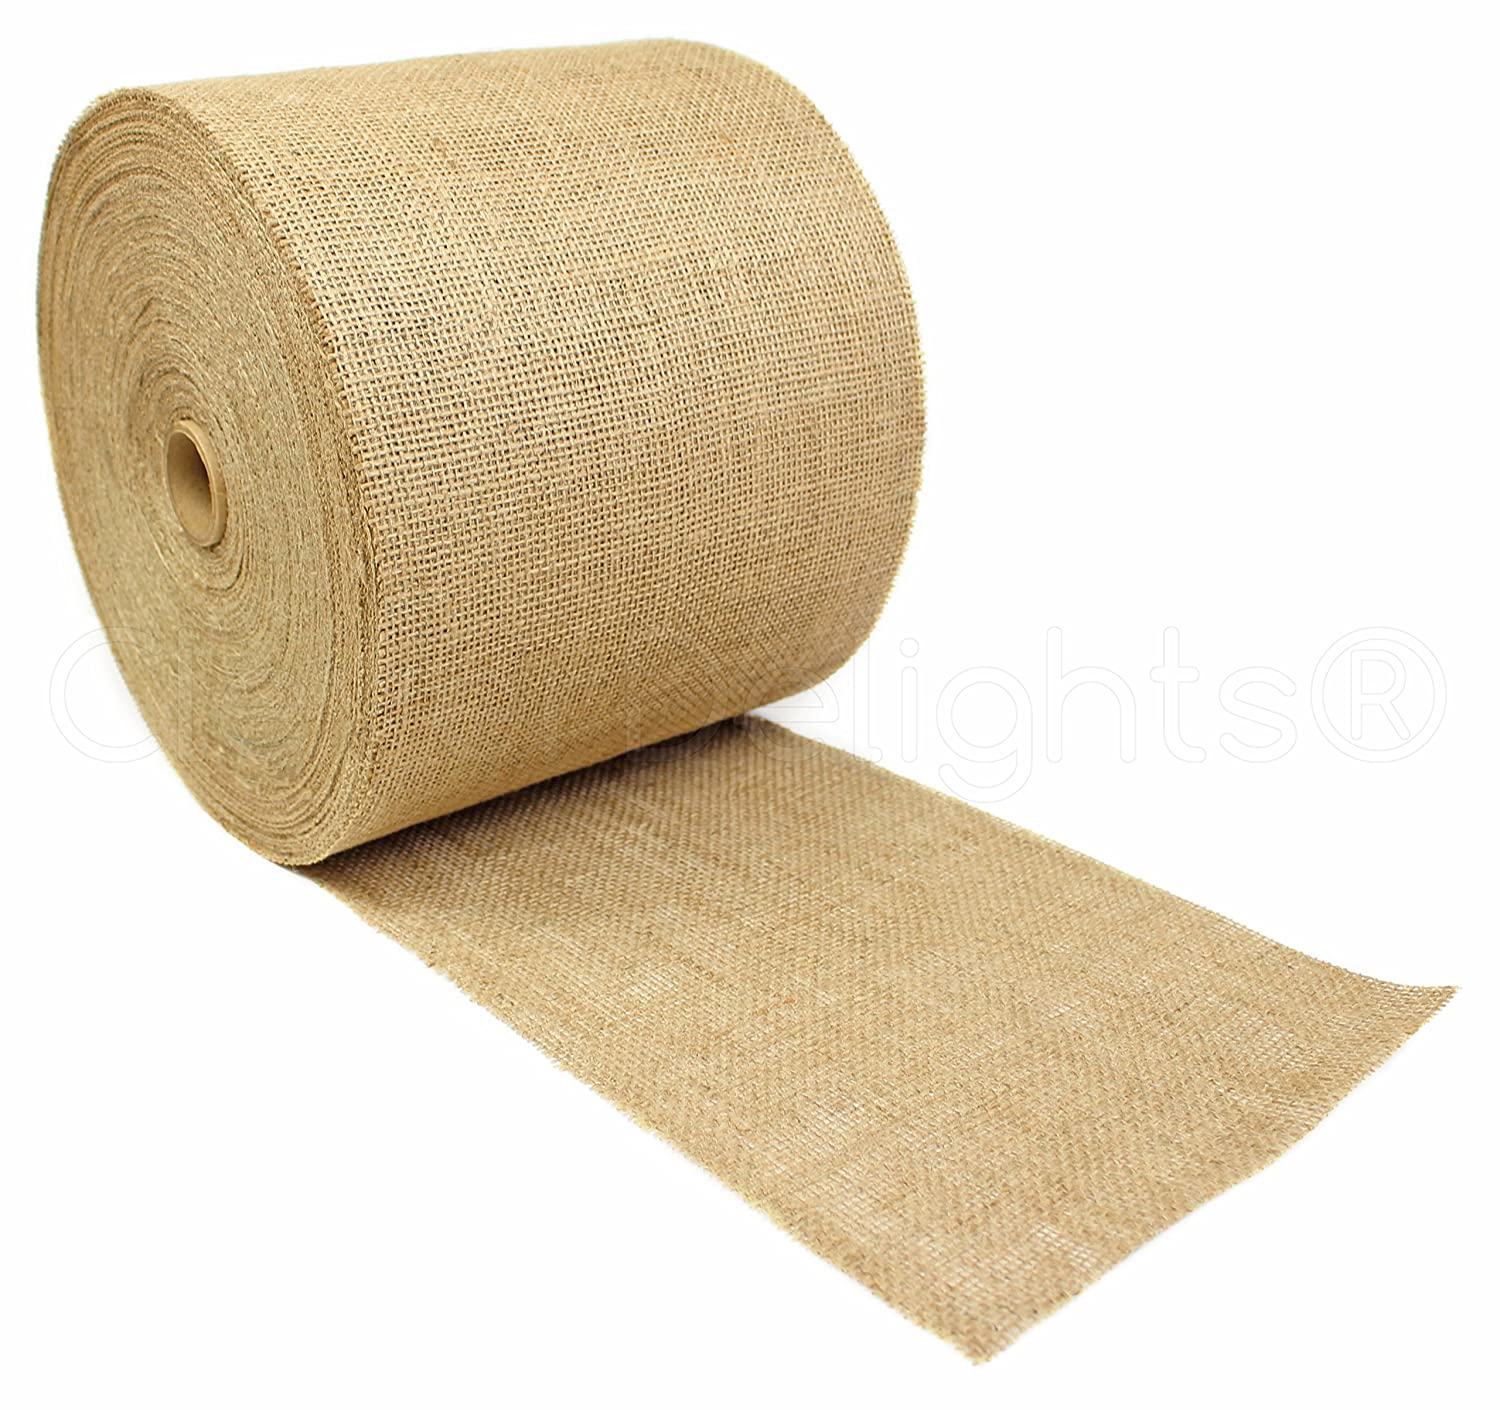 CleverDelights 9 Natural Burlap Roll - 100 Yards - Eco-Friendly Jute Burlap Fabric - 9 Inch by CleverDelights   B016J6NK1O